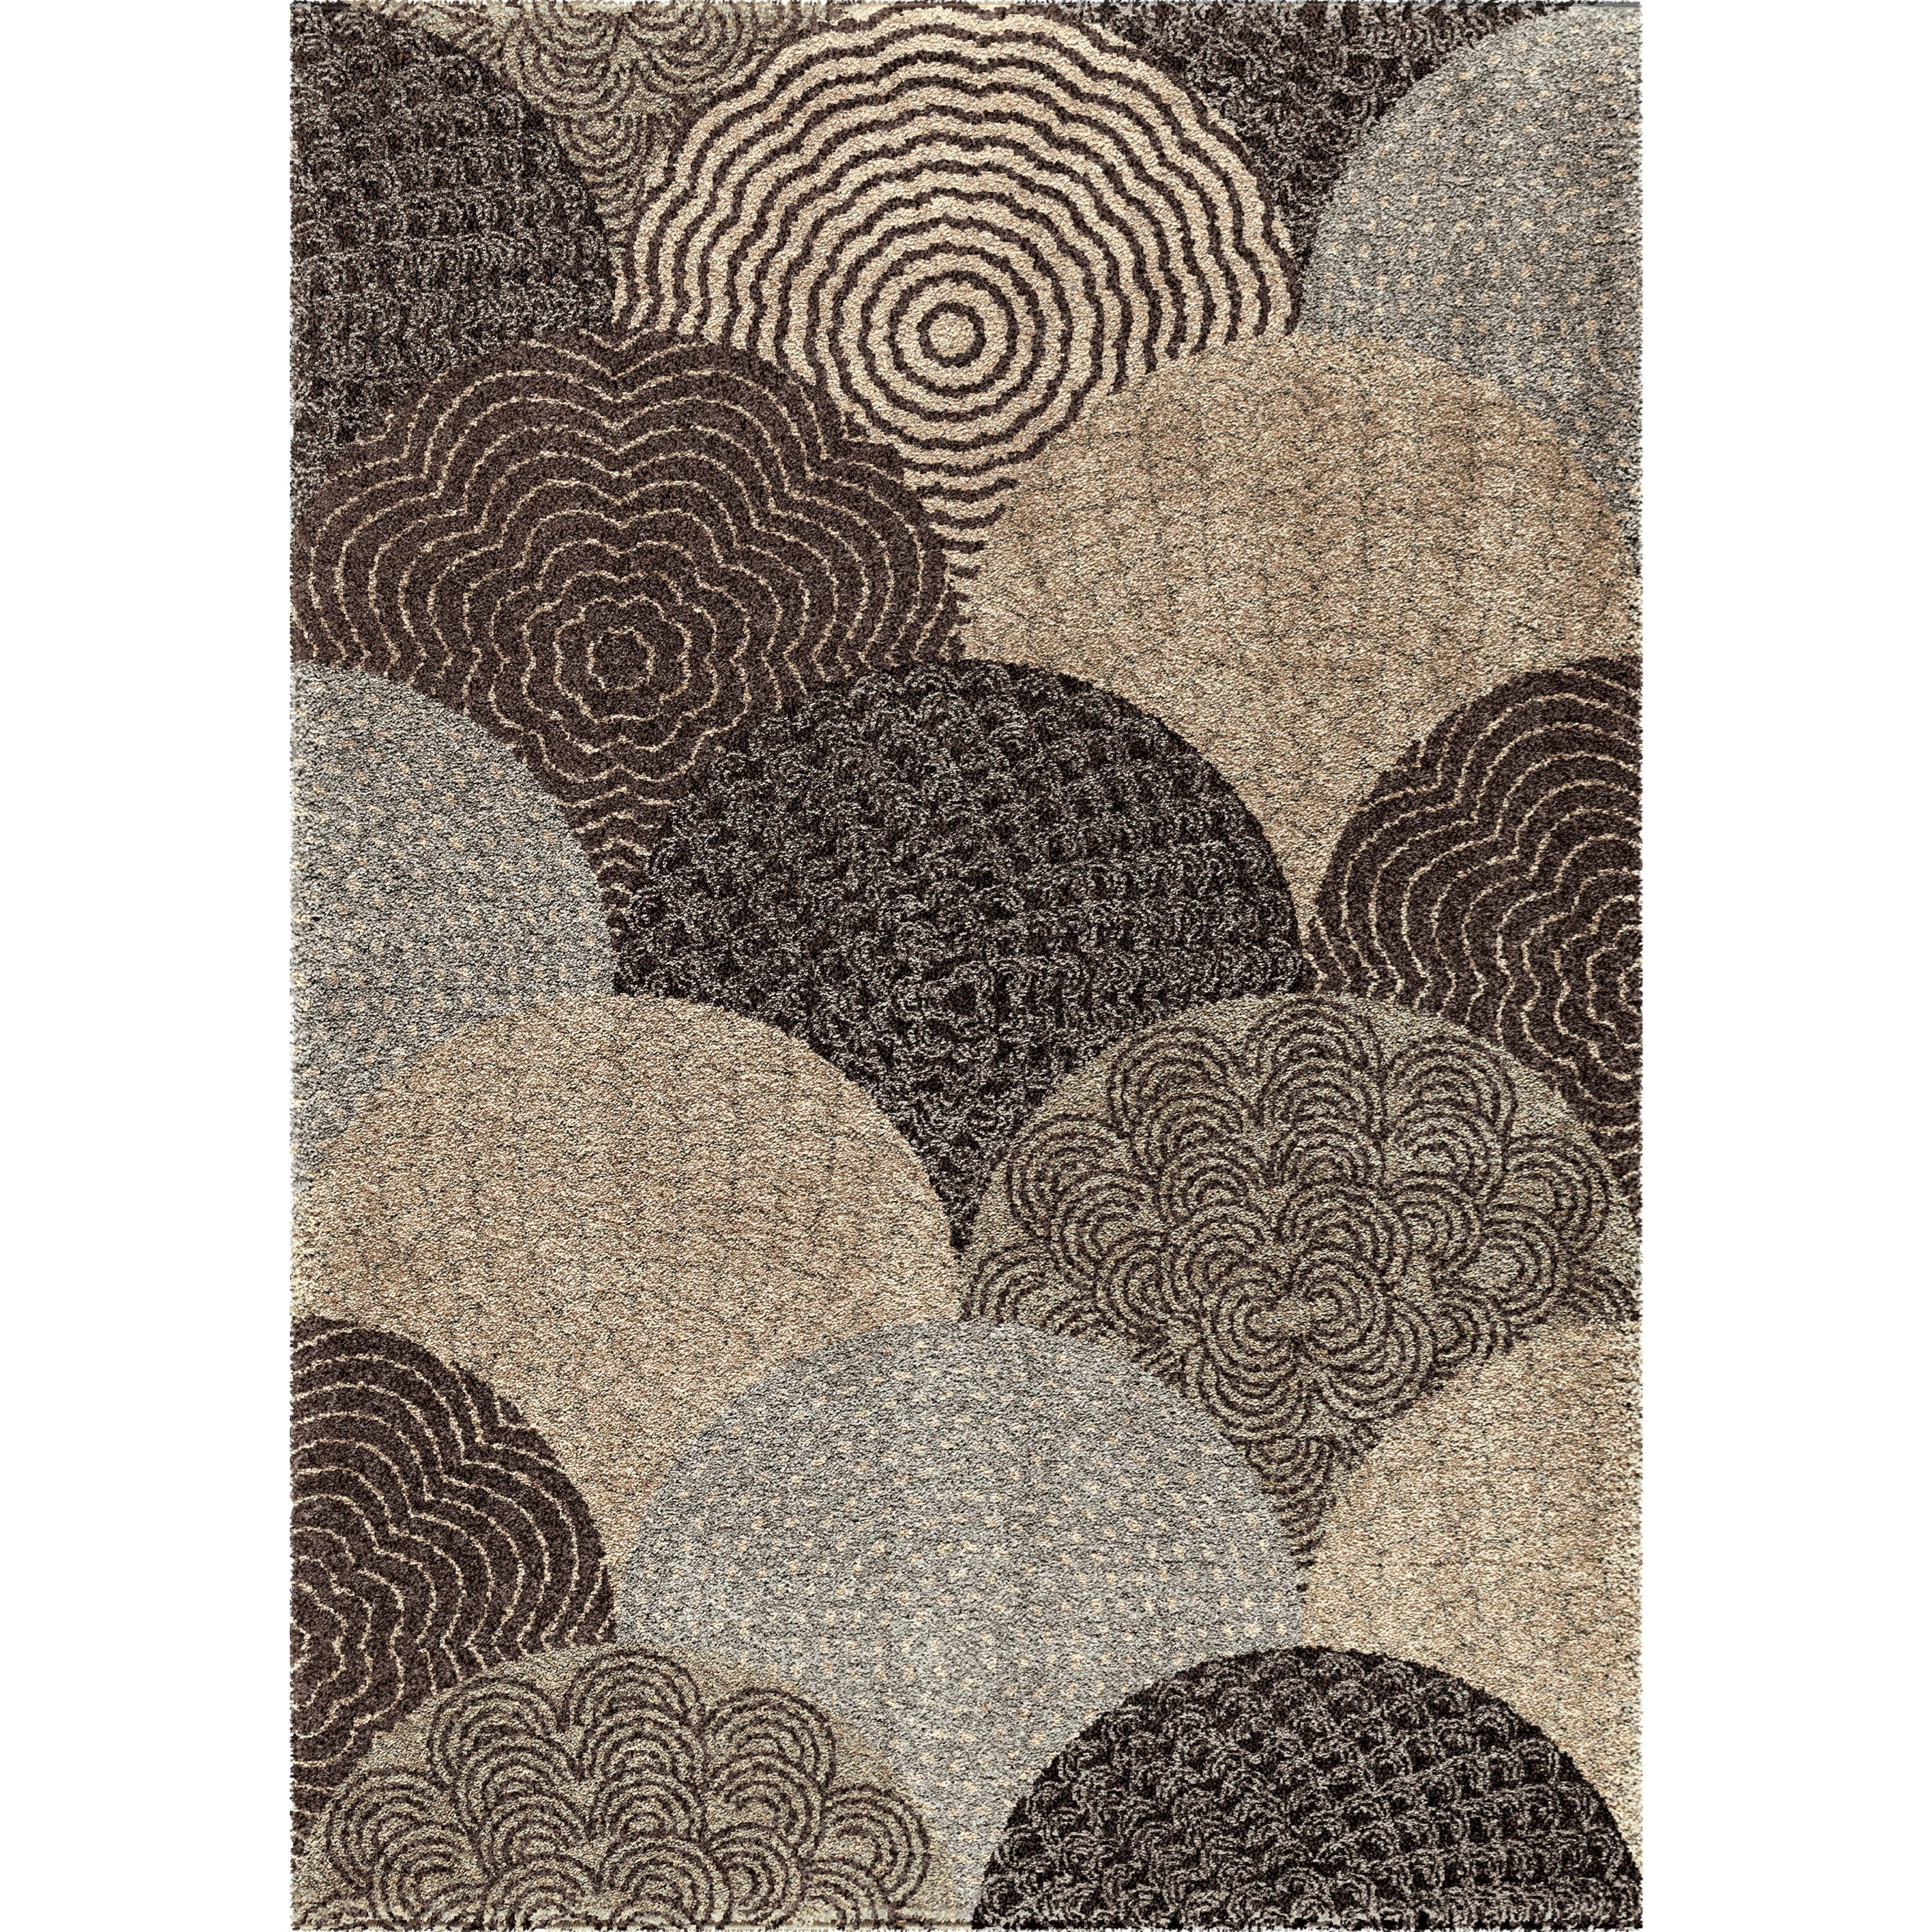 """Wild Weave Oystershell Seal Black 6'7"""" x 9'8"""" Rug by Orian Rugs at Mueller Furniture"""